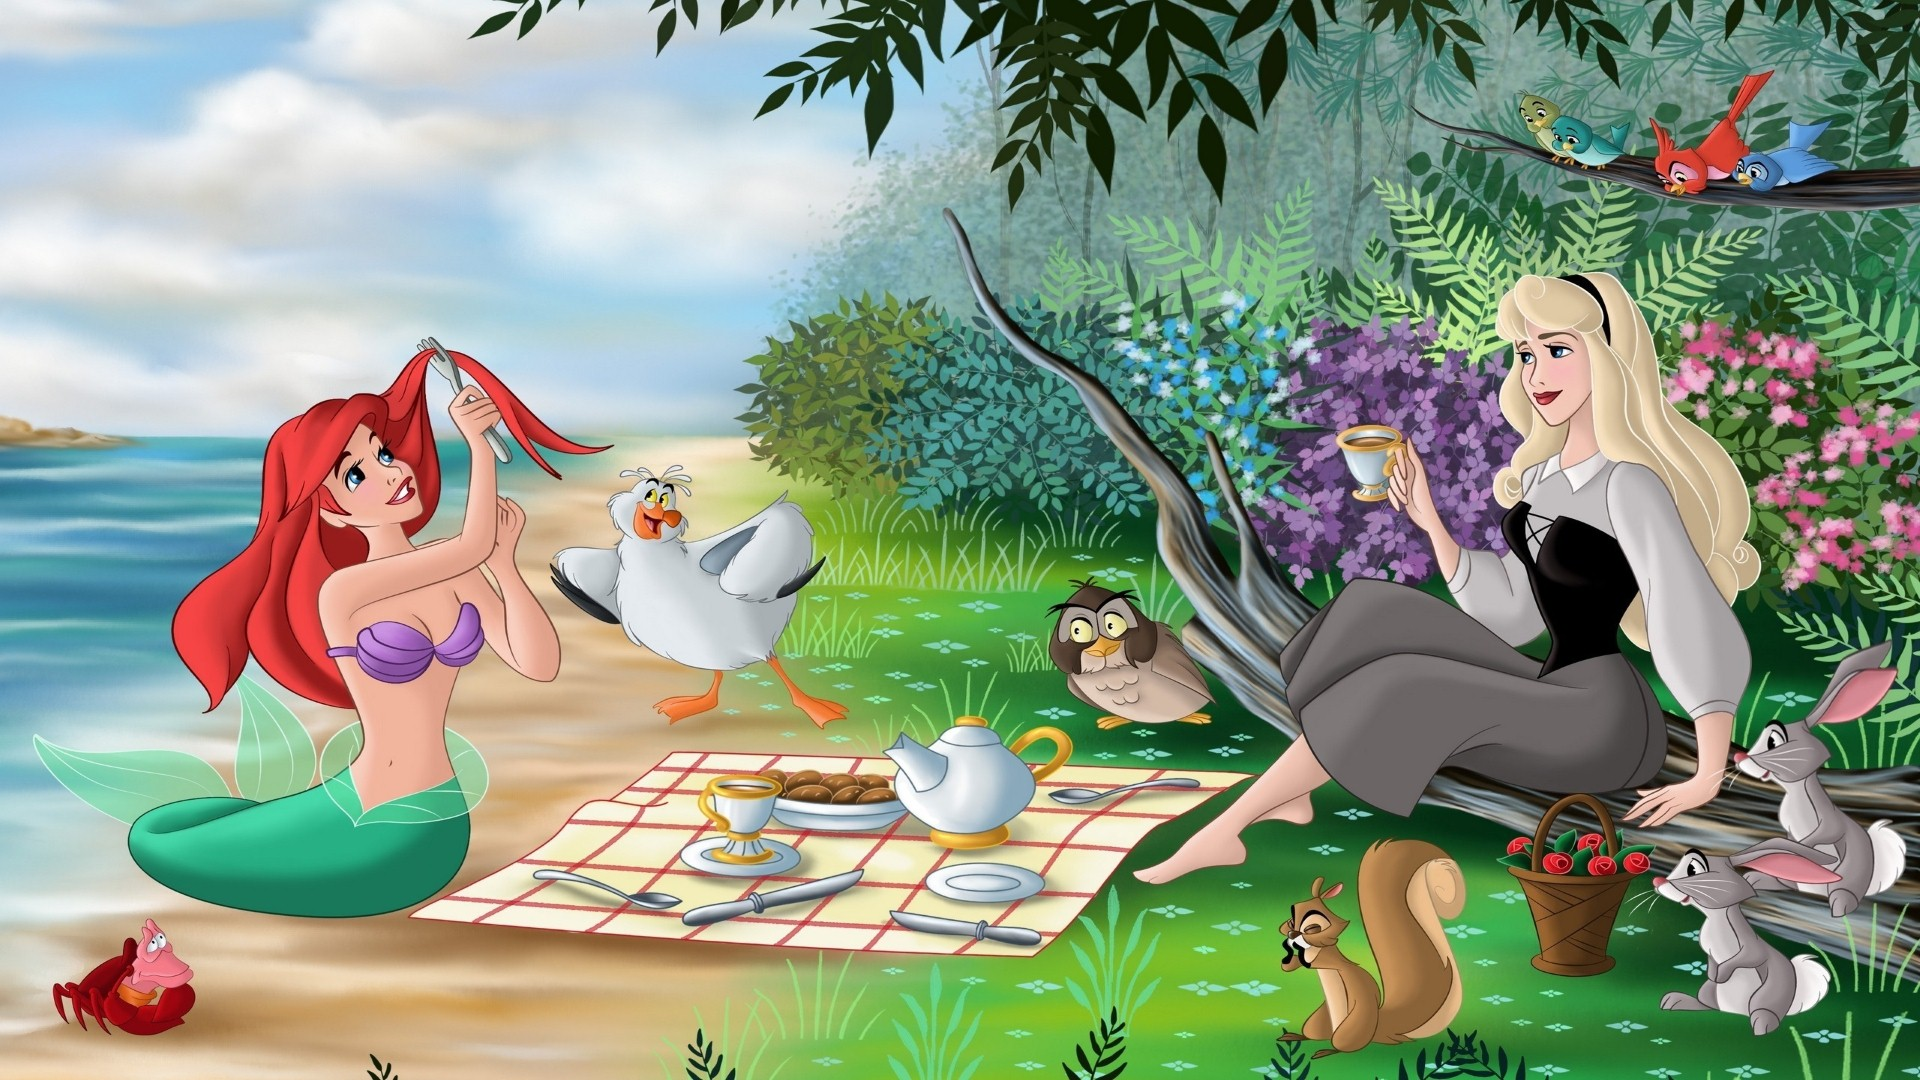 Free Disney Princess Wallpaper 1920 1080 Hd Wallpapers Hd Backgrounds Tumblr Backgrounds Images Pictures